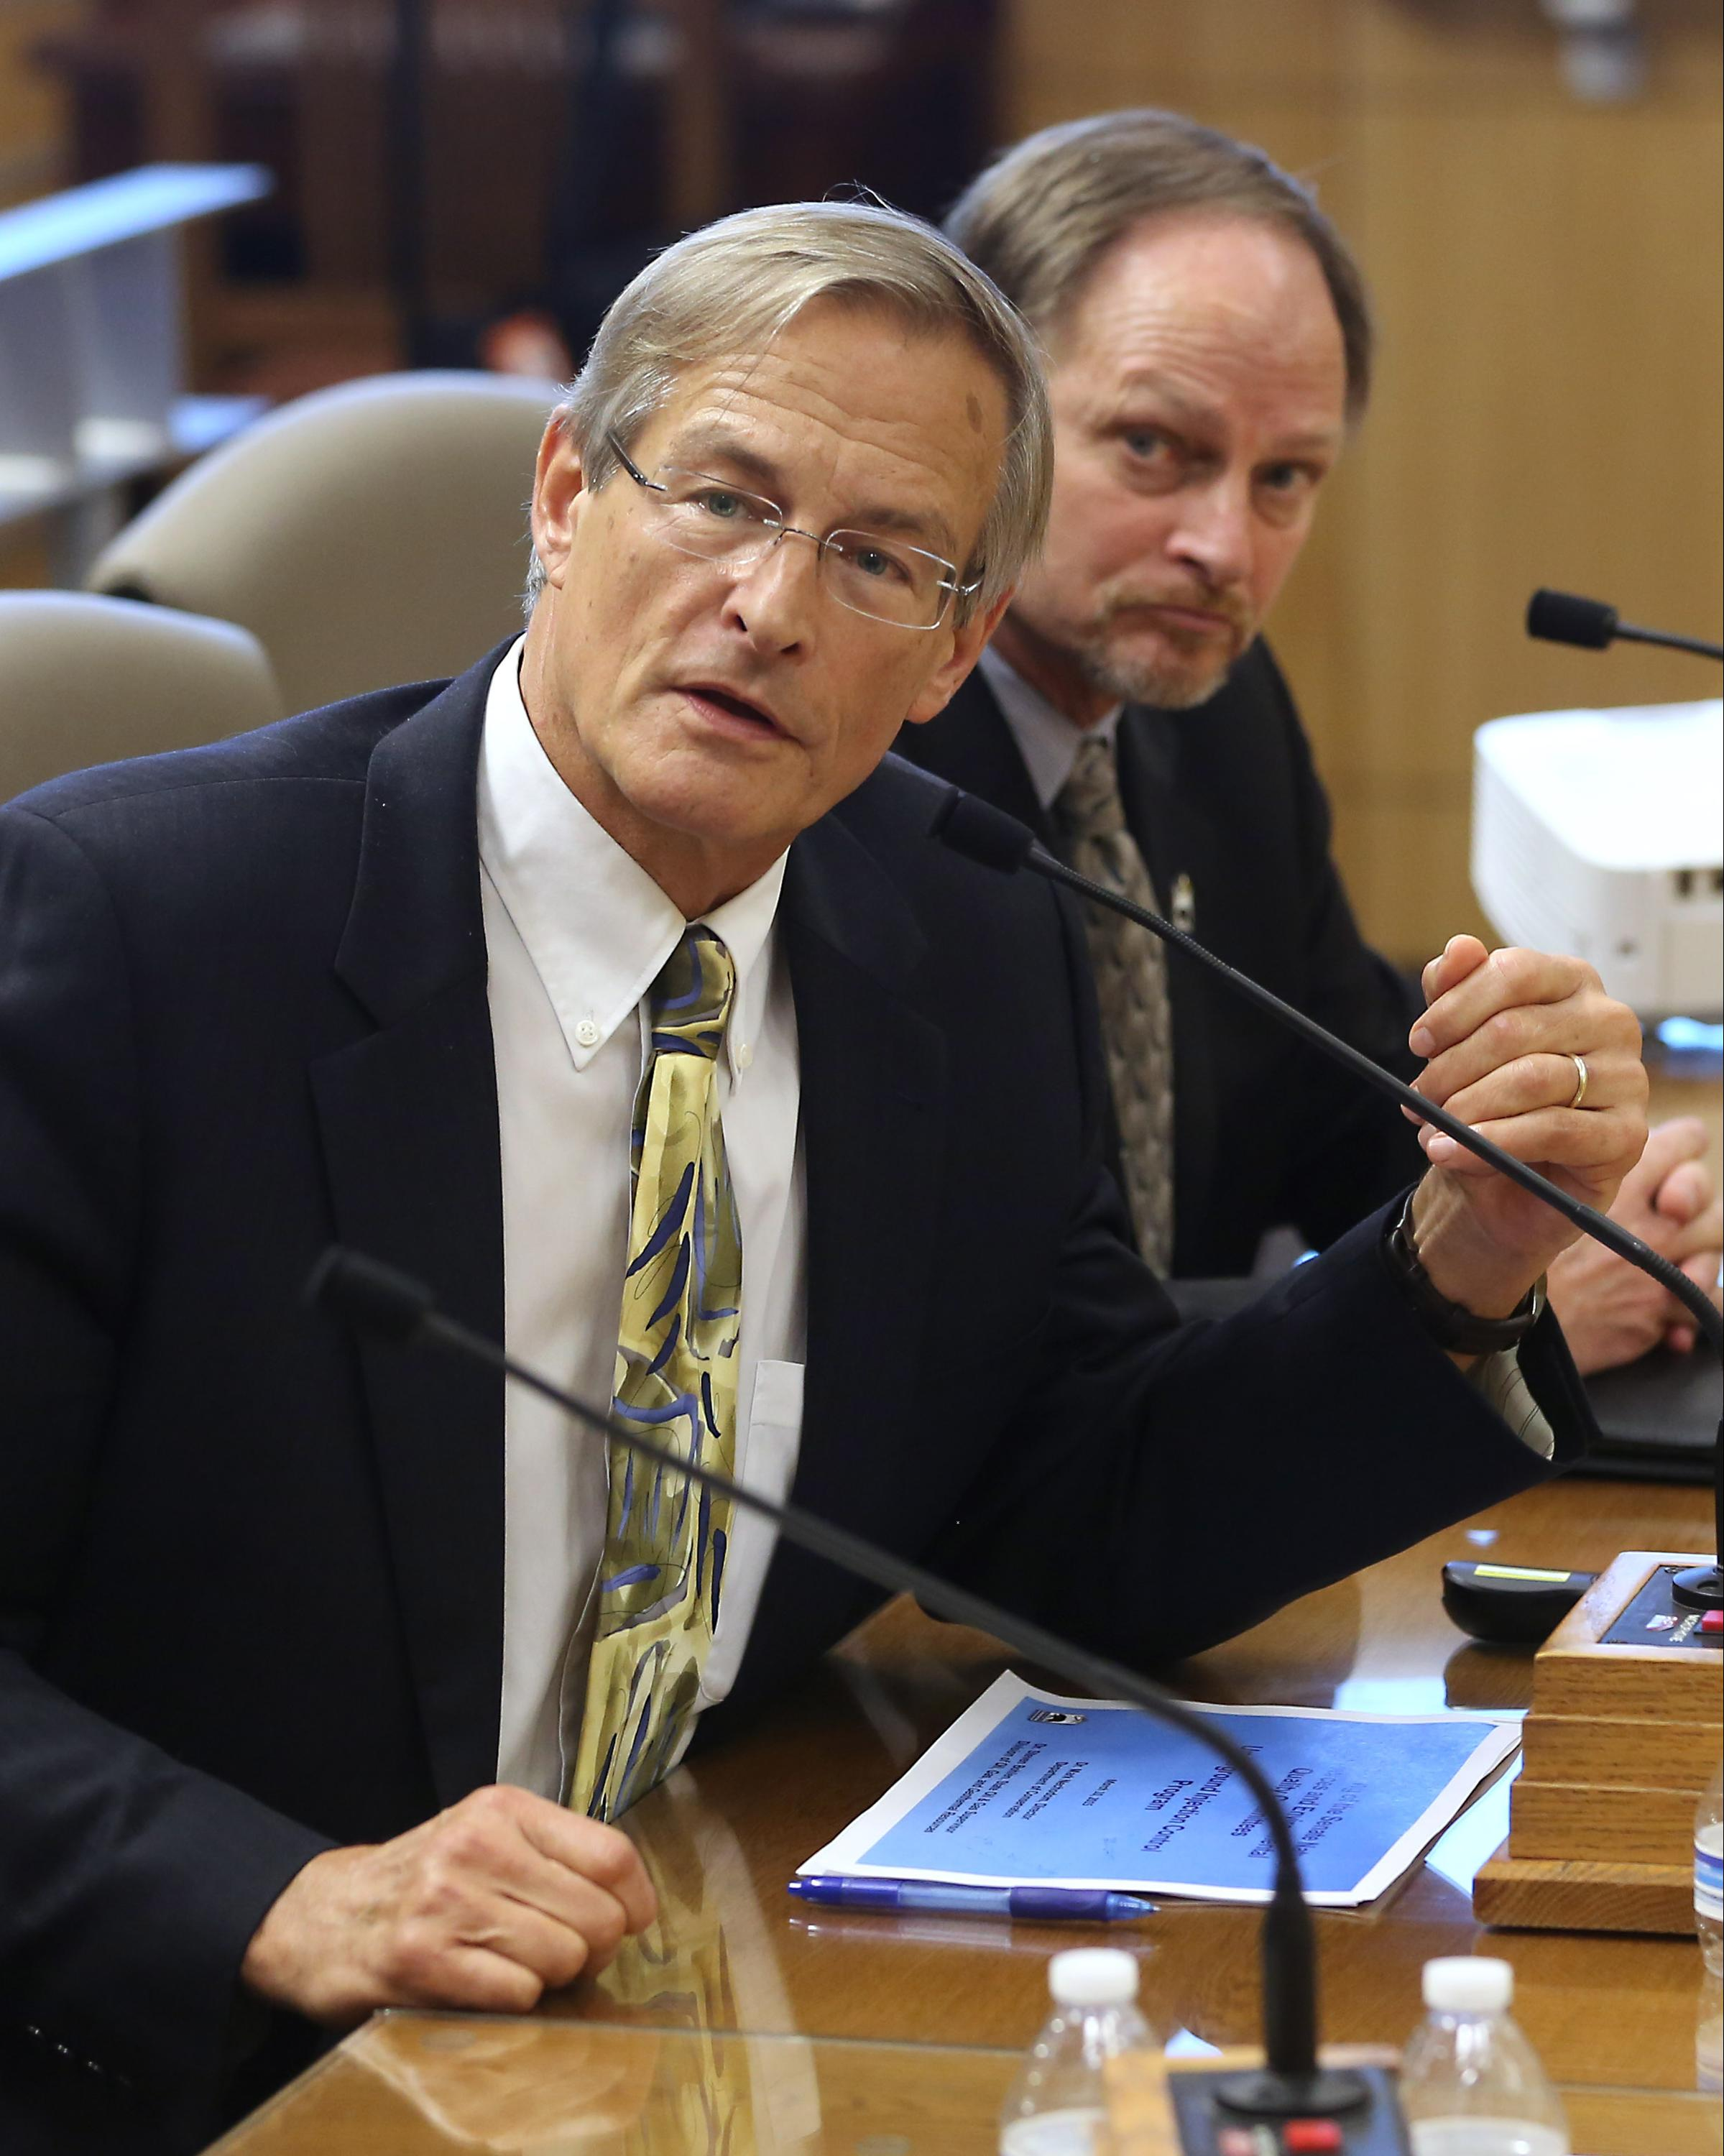 California's top oil regulator quits after controversies